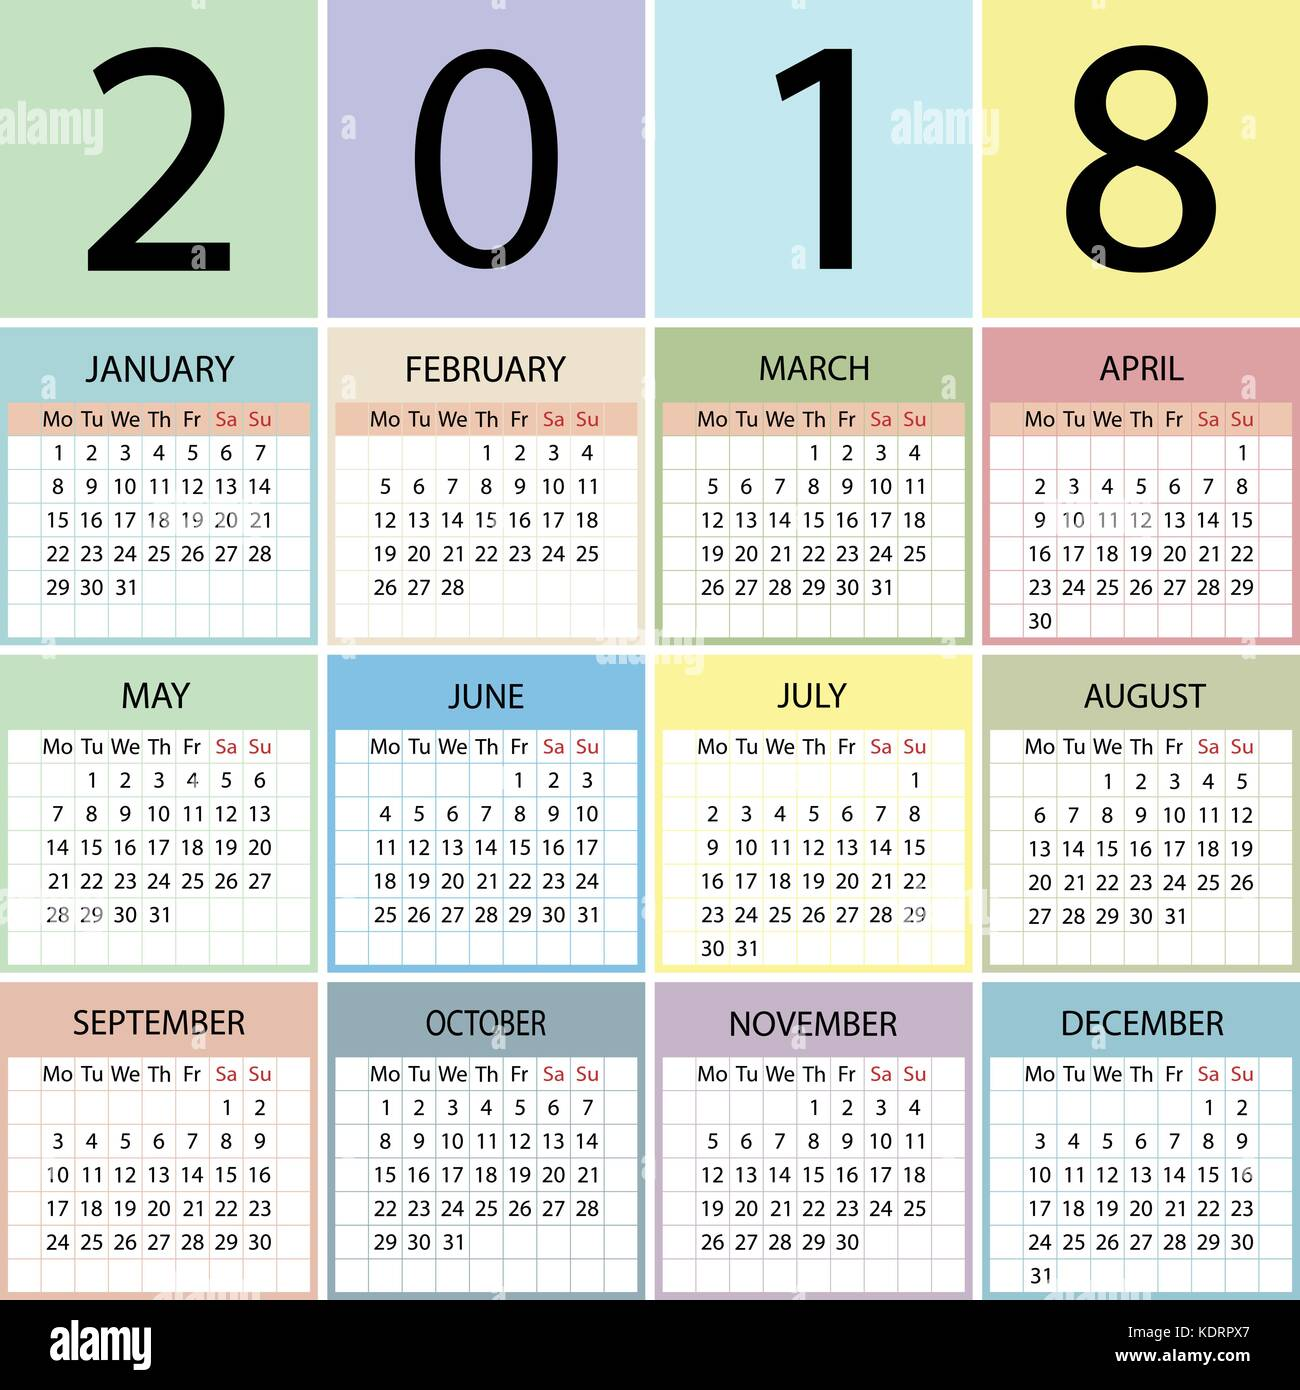 Year Calendar Starting : Calendar year week starts with monday stock vector